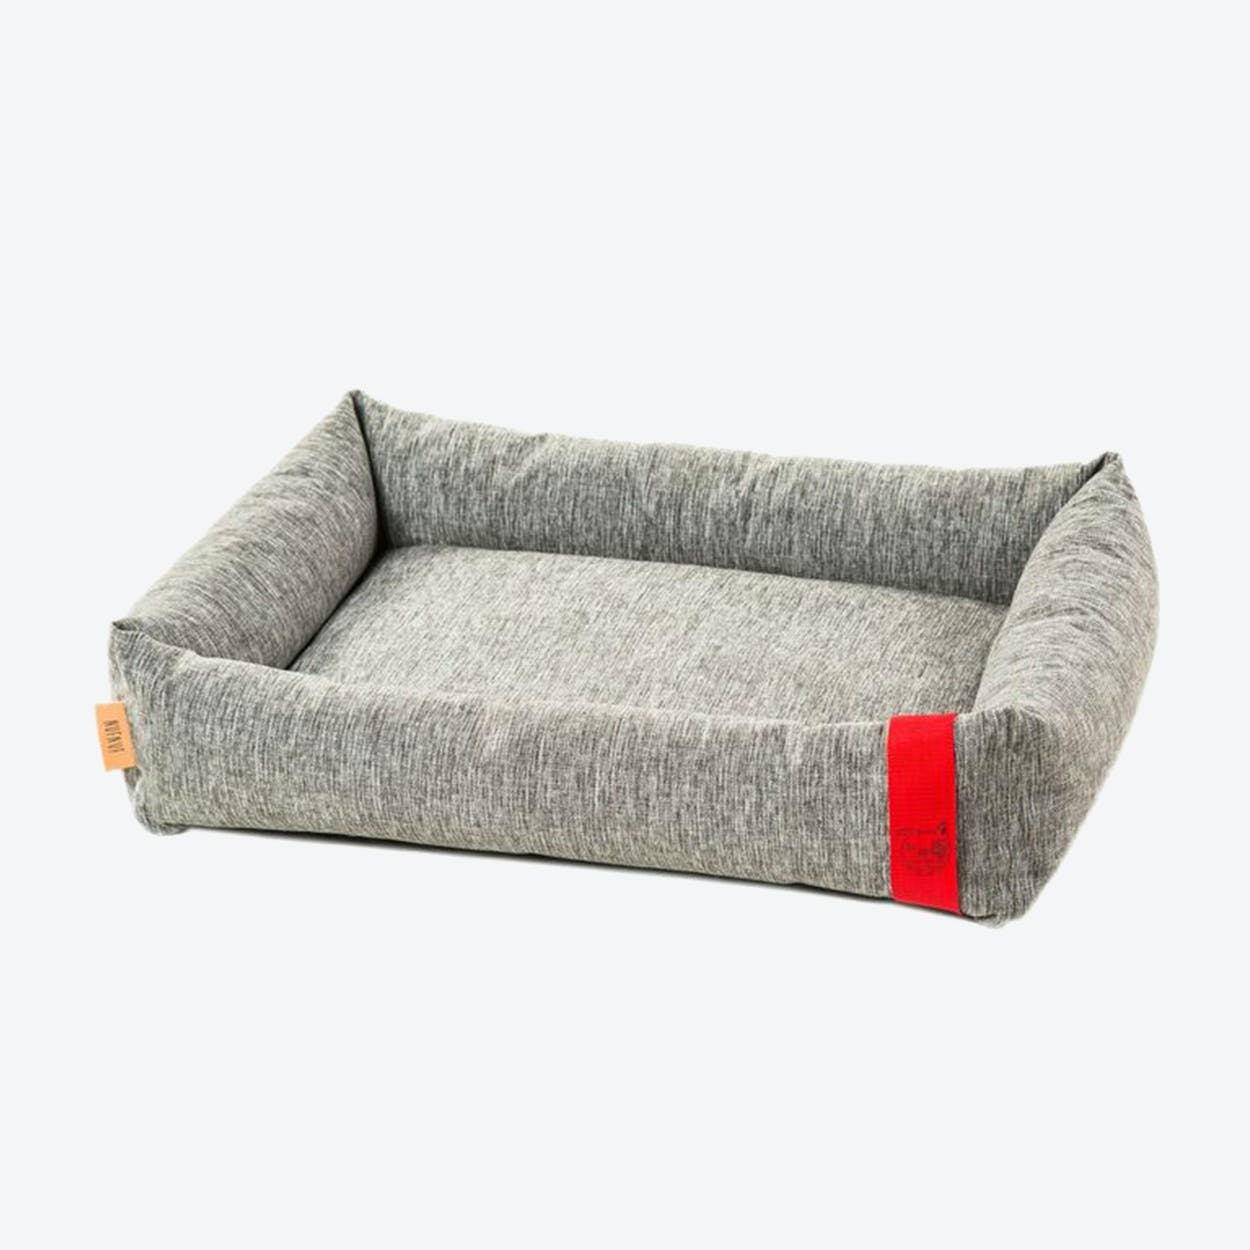 Bobbie Bed in Light Grey